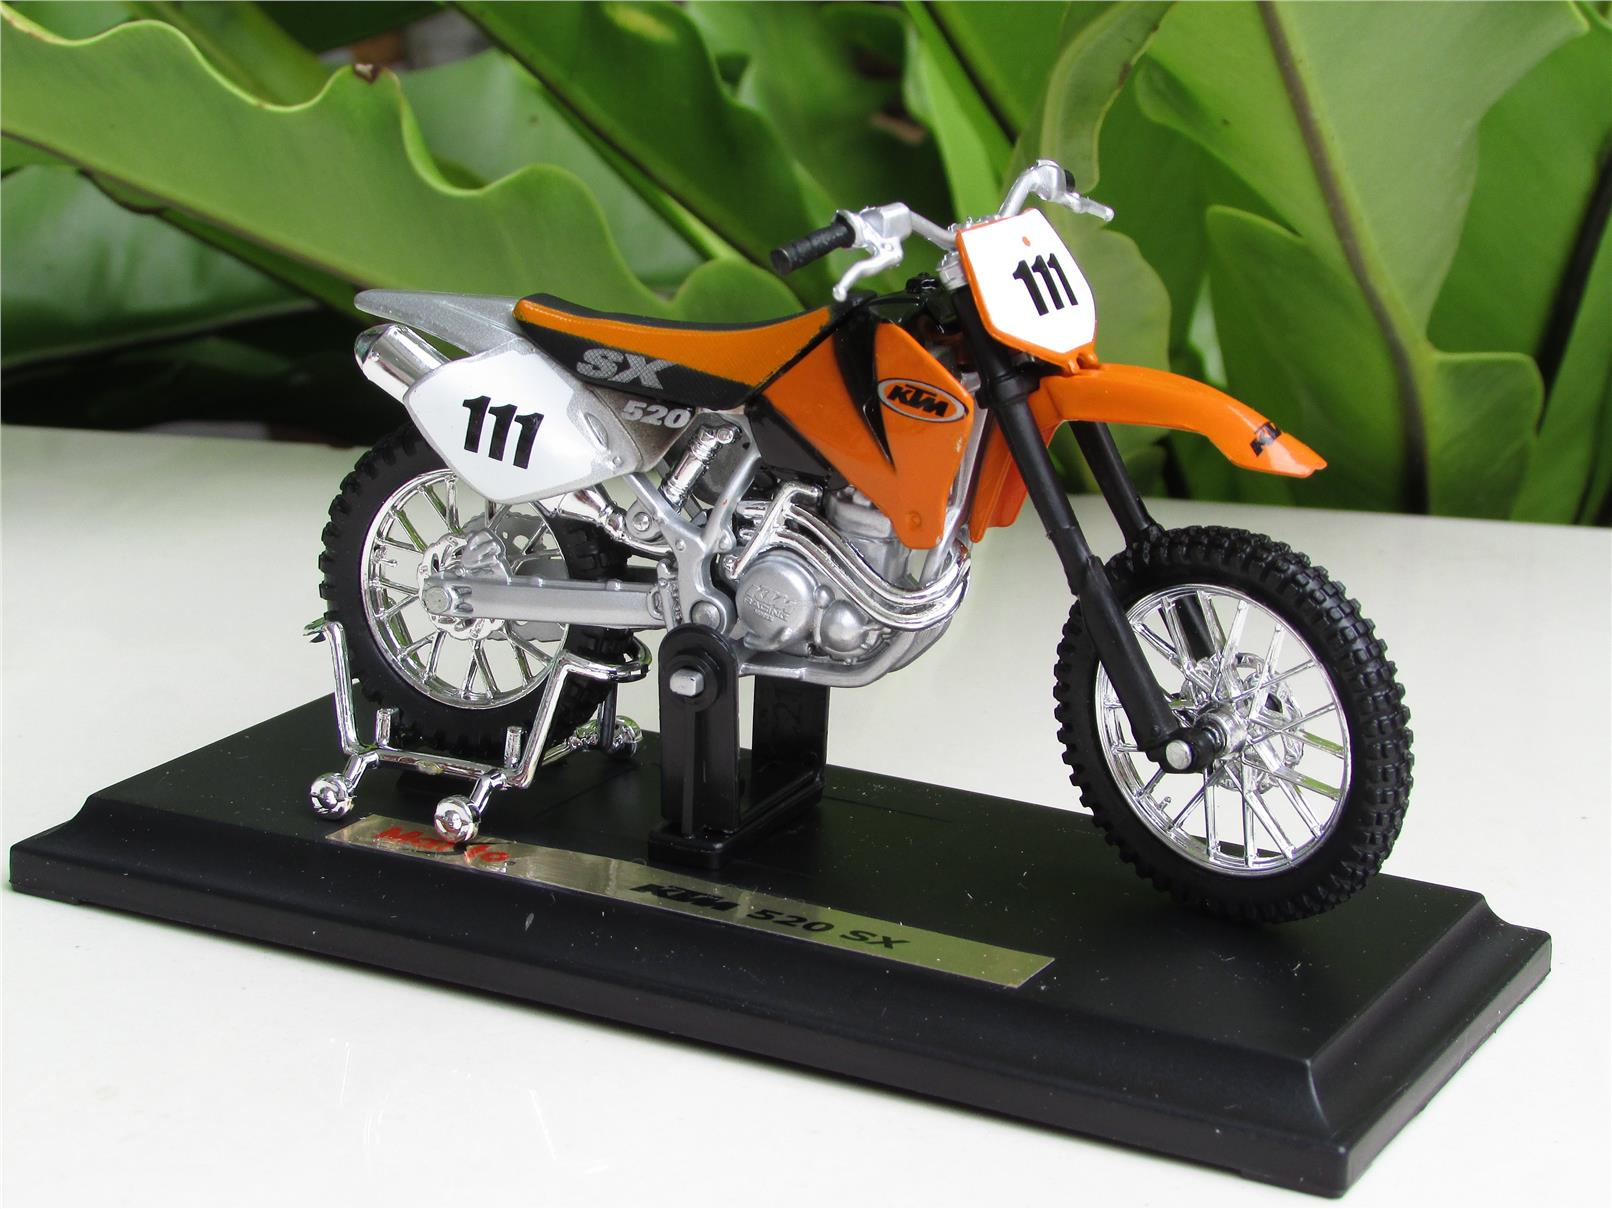 Maisto 1/18 Diecast Motorcycle KTM 520 SX #111 Orange